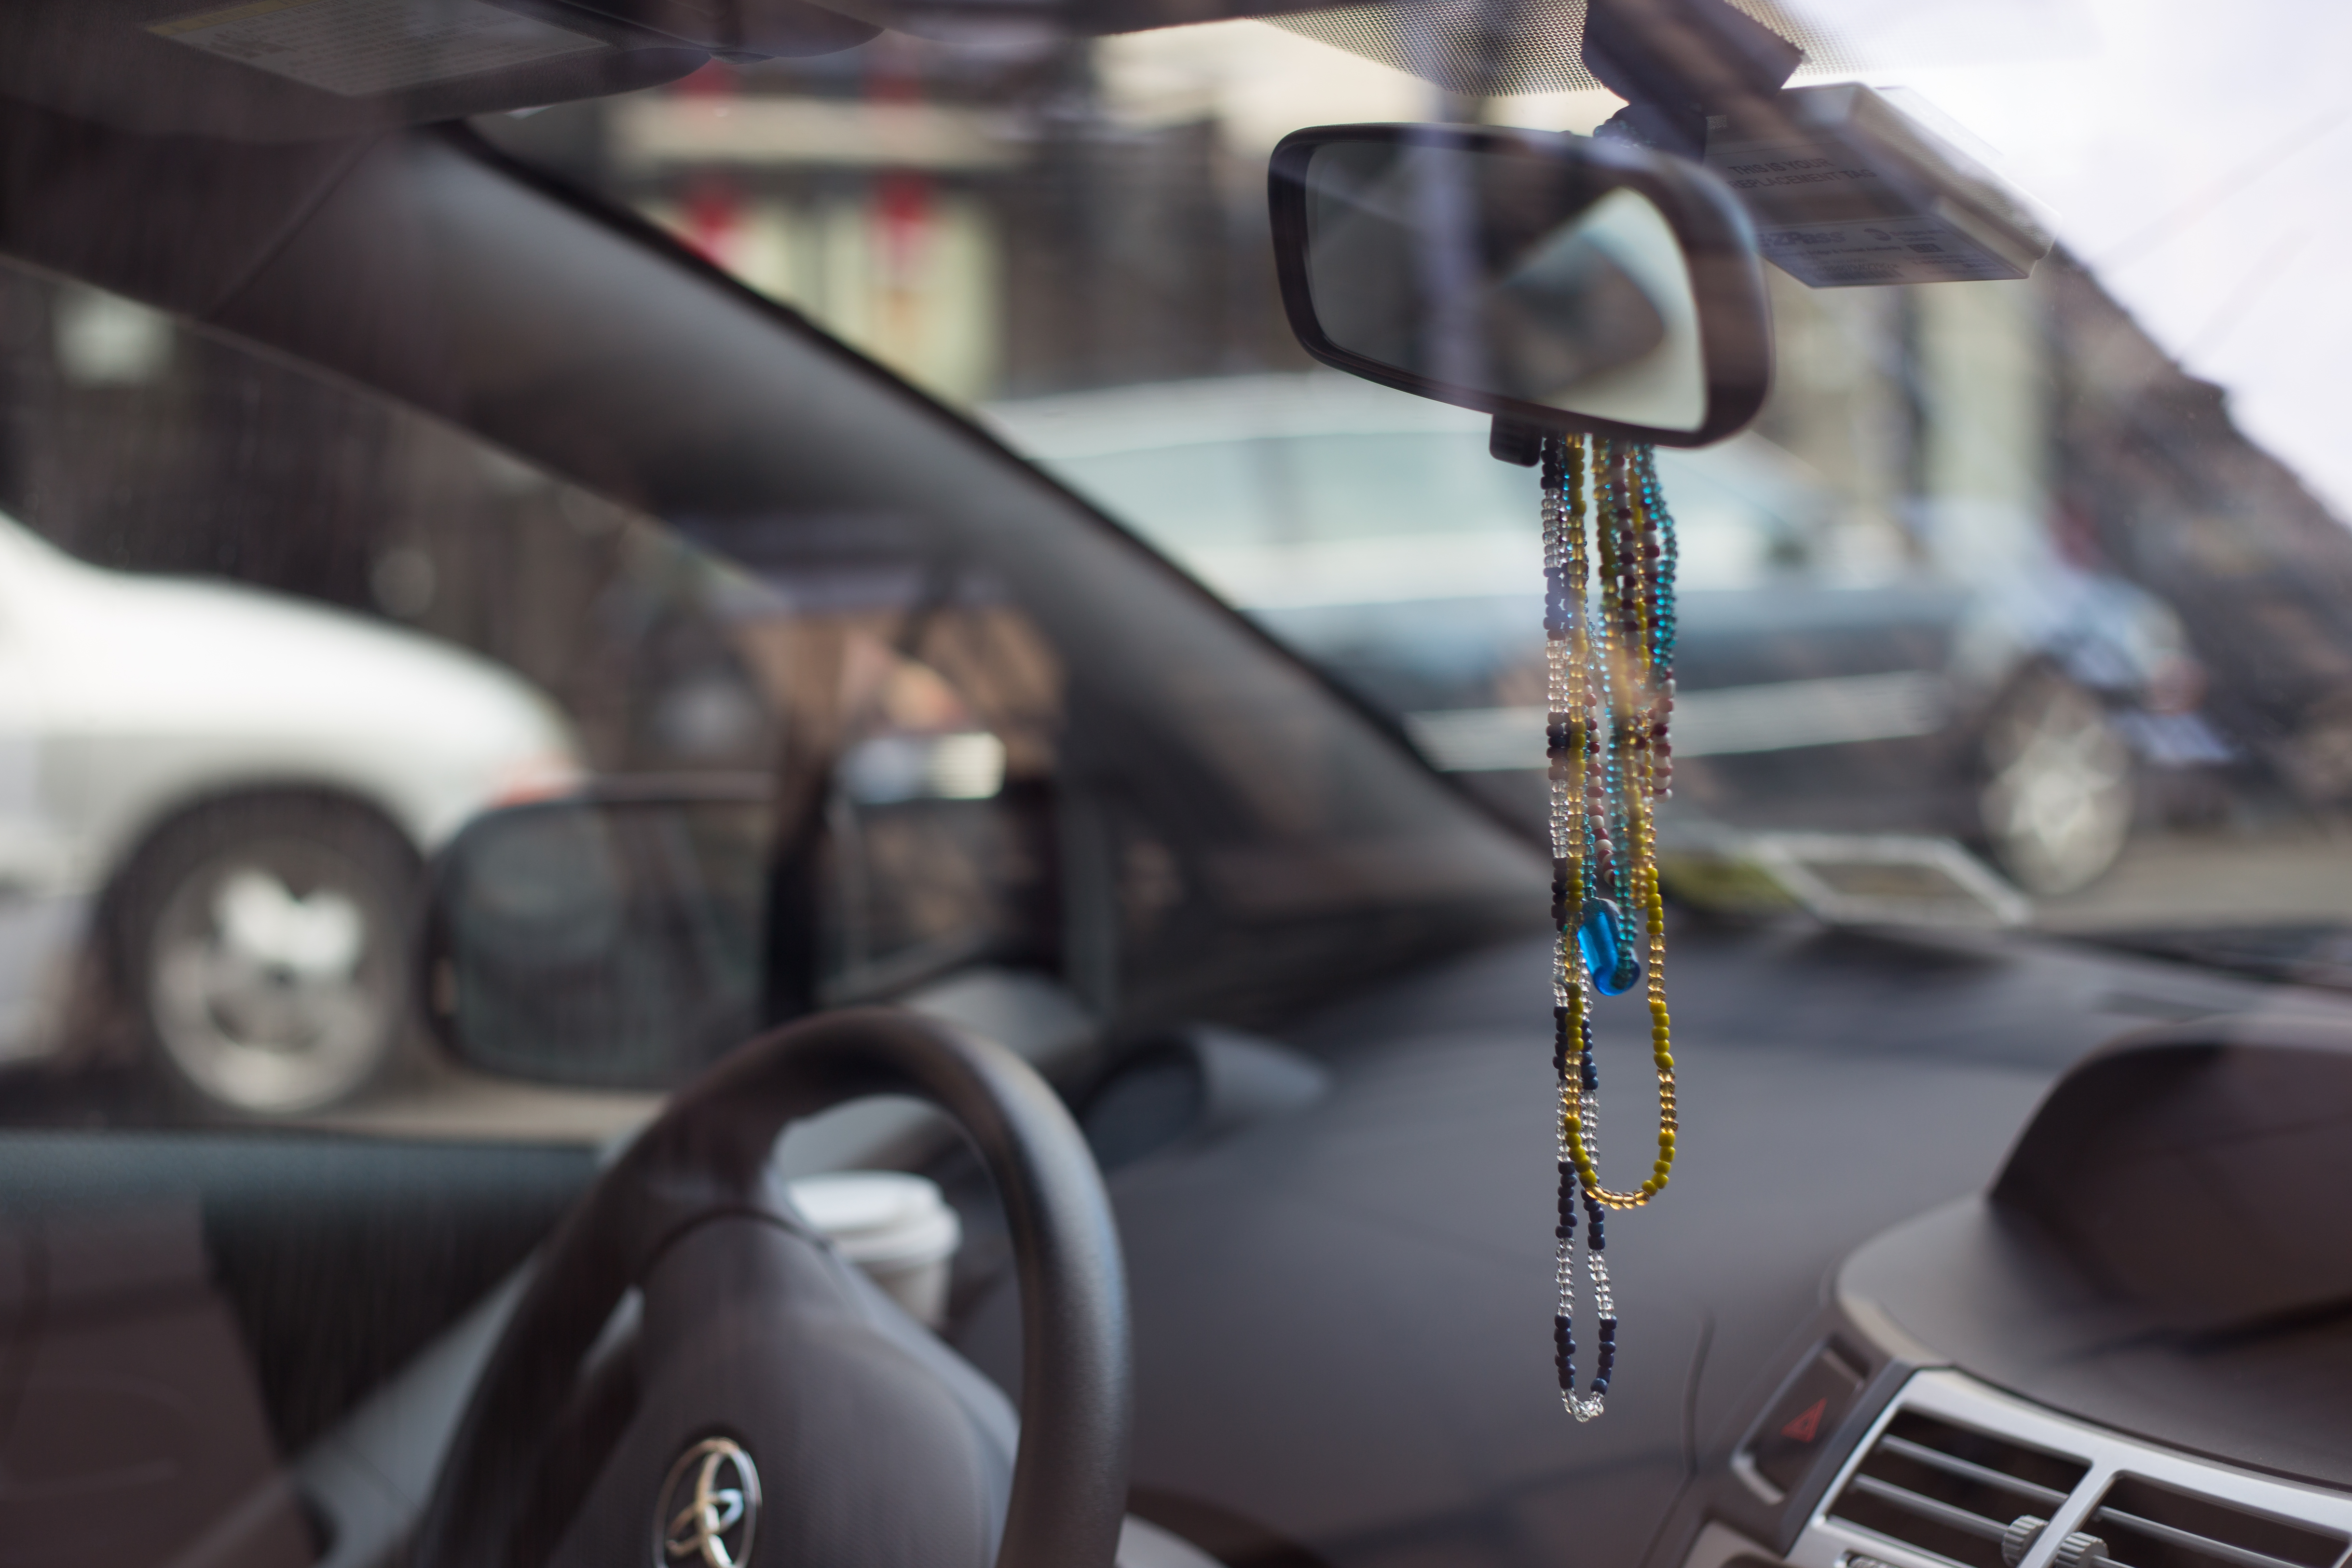 What Do New Yorkers Hang On The Rearview Mirrors Of Their